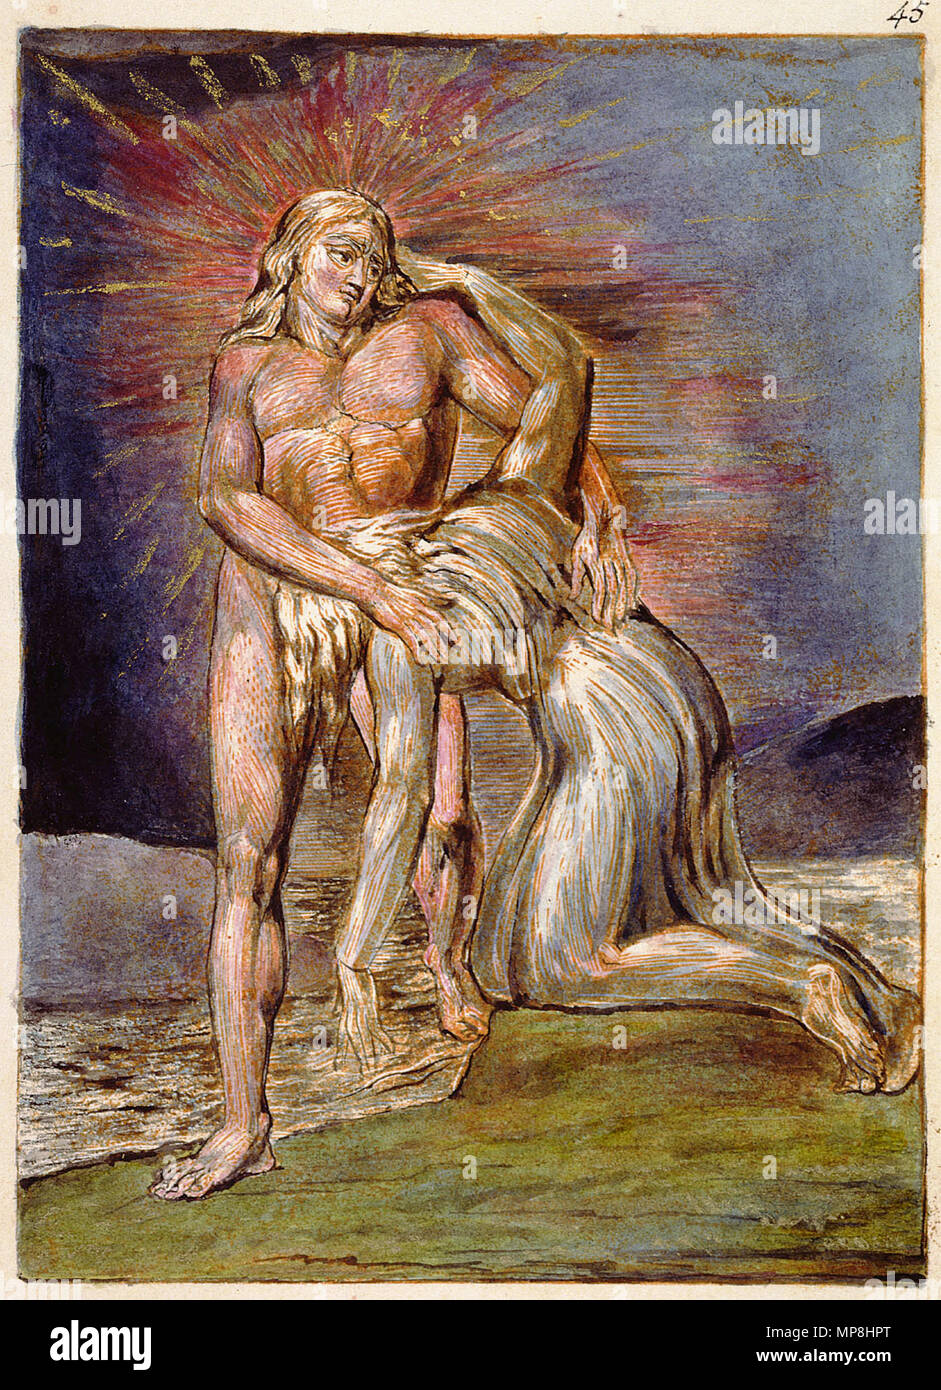 . English: Milton a Poem, copy D, object 45 (Bentley 41, Erdman not numbered, Keynes 41) . 26 March 2007, 09:00:21.   William Blake (1757–1827)   Alternative names W. Blake; Uil'iam Bleik  Description British painter, poet, writer, theologian, collector and engraver  Date of birth/death 28 November 1757 12 August 1827  Location of birth/death Broadwick Street Charing Cross  Work location London  Authority control  : Q41513 VIAF:54144439 ISNI:0000 0001 2096 135X ULAN:500012489 LCCN:n78095331 NLA:35019221 WorldCat     This is a faithful photographic reproduction of a two-dimensional, p Stock Photo